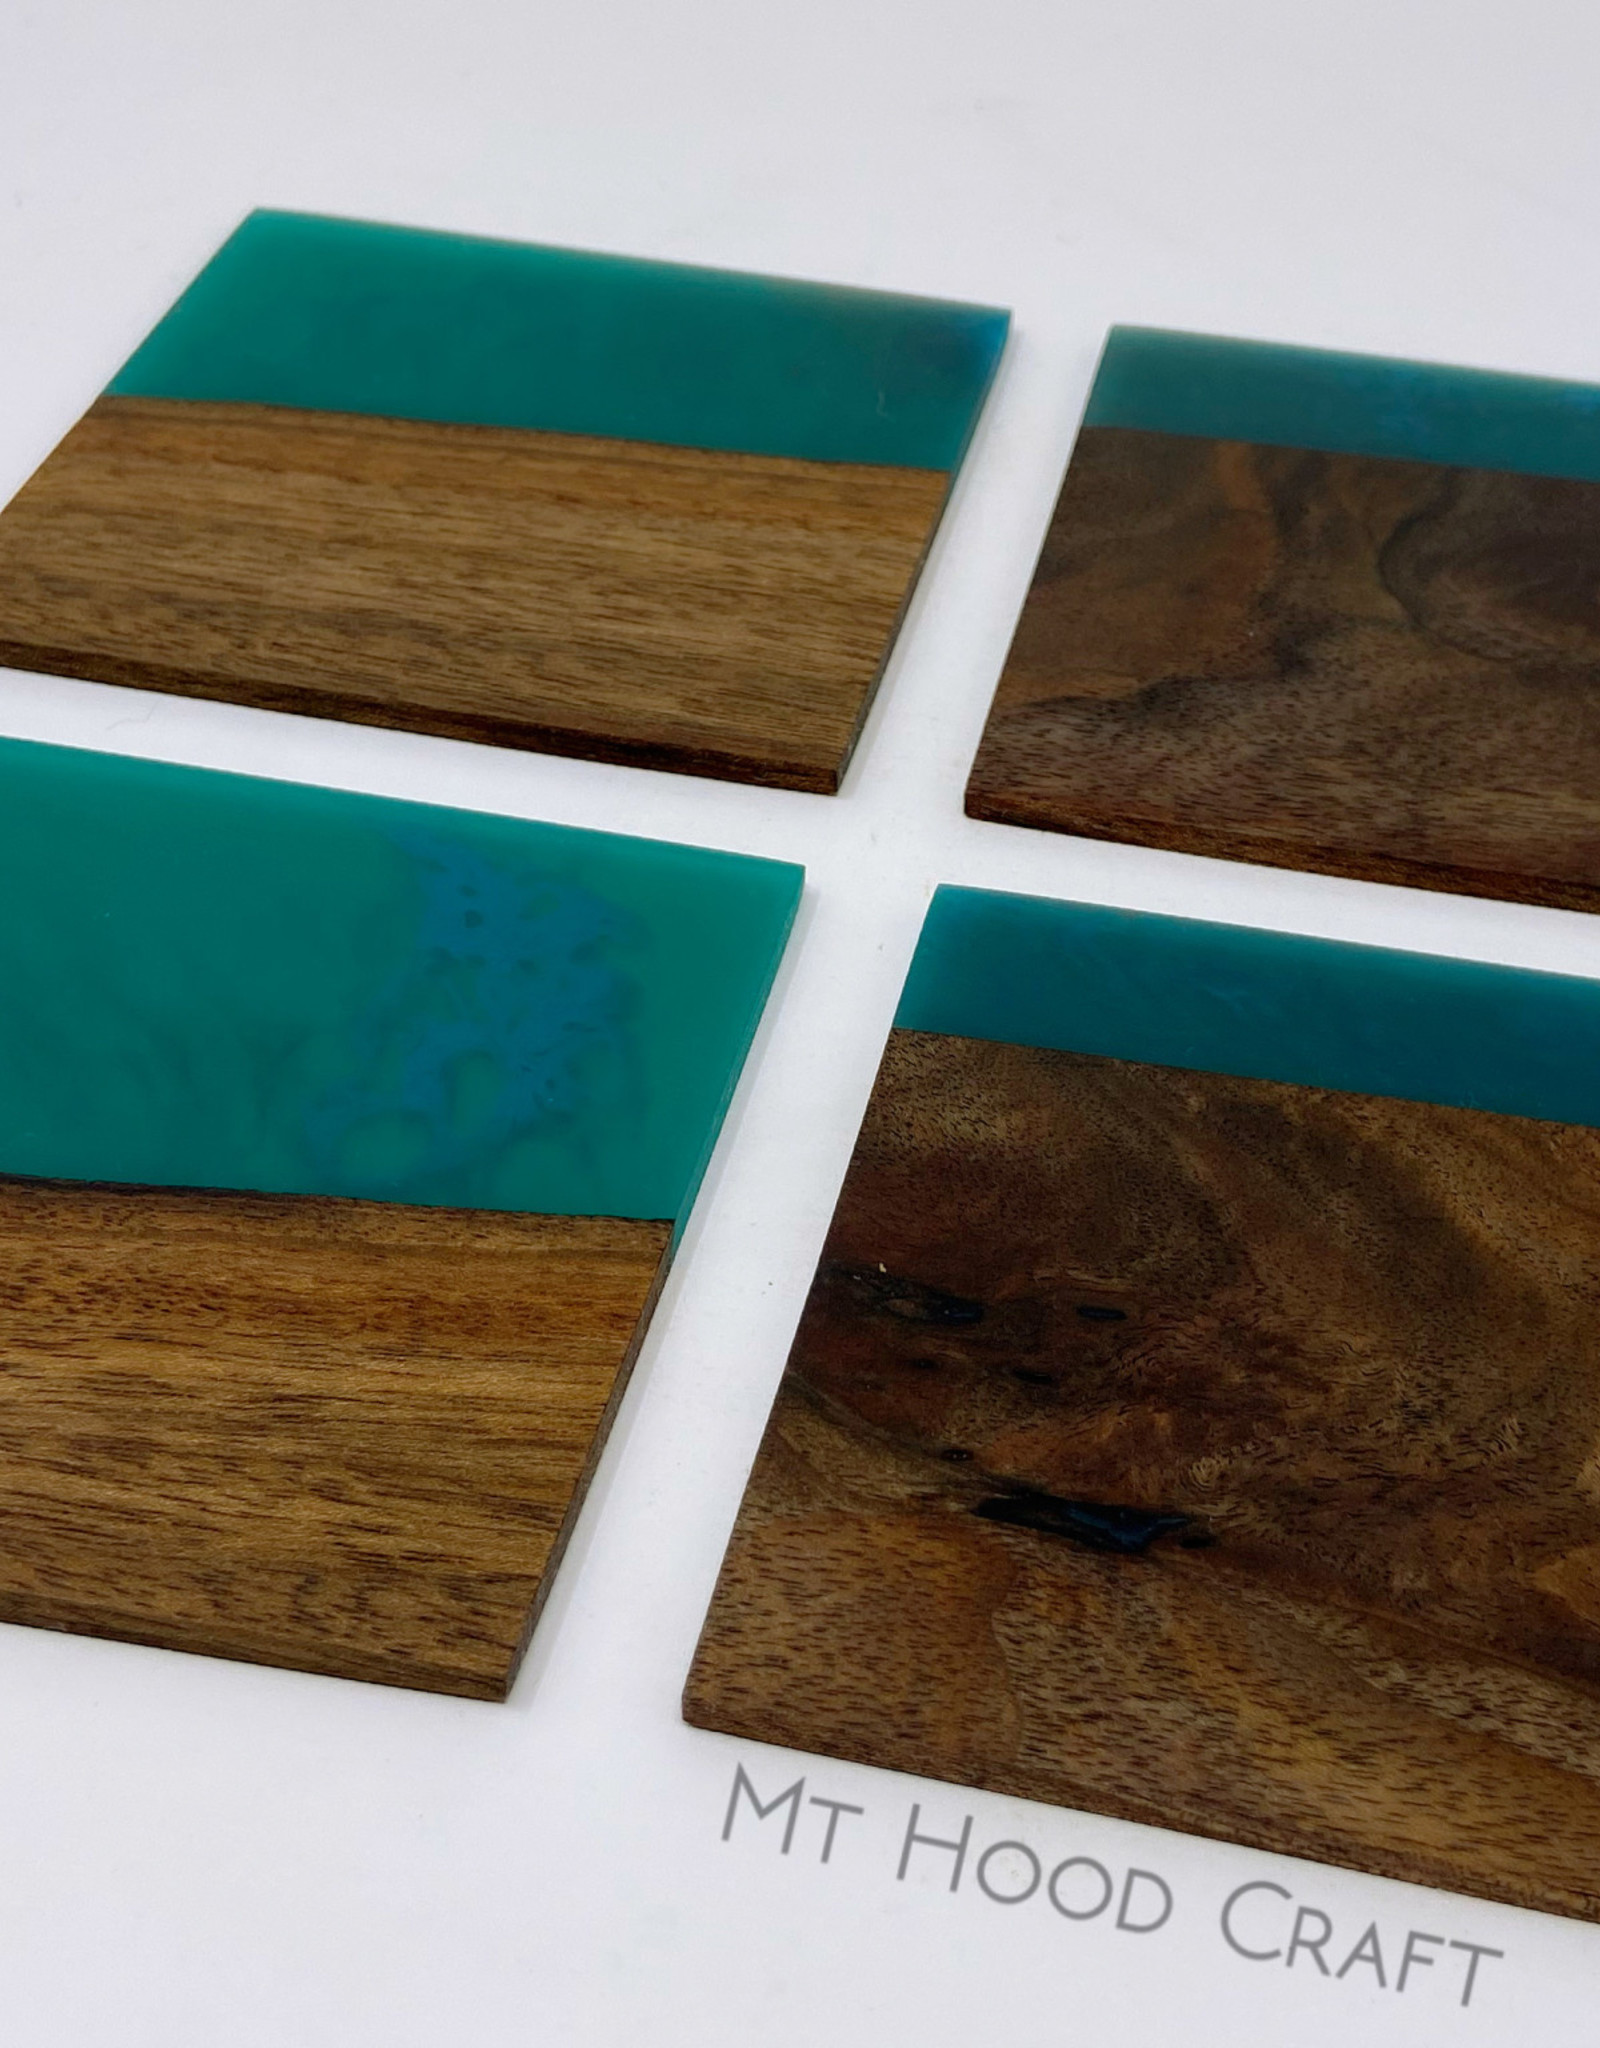 """Mt. Hood Craft - """"Lumiere""""- Wood and Resin Coasters (set of 4)"""